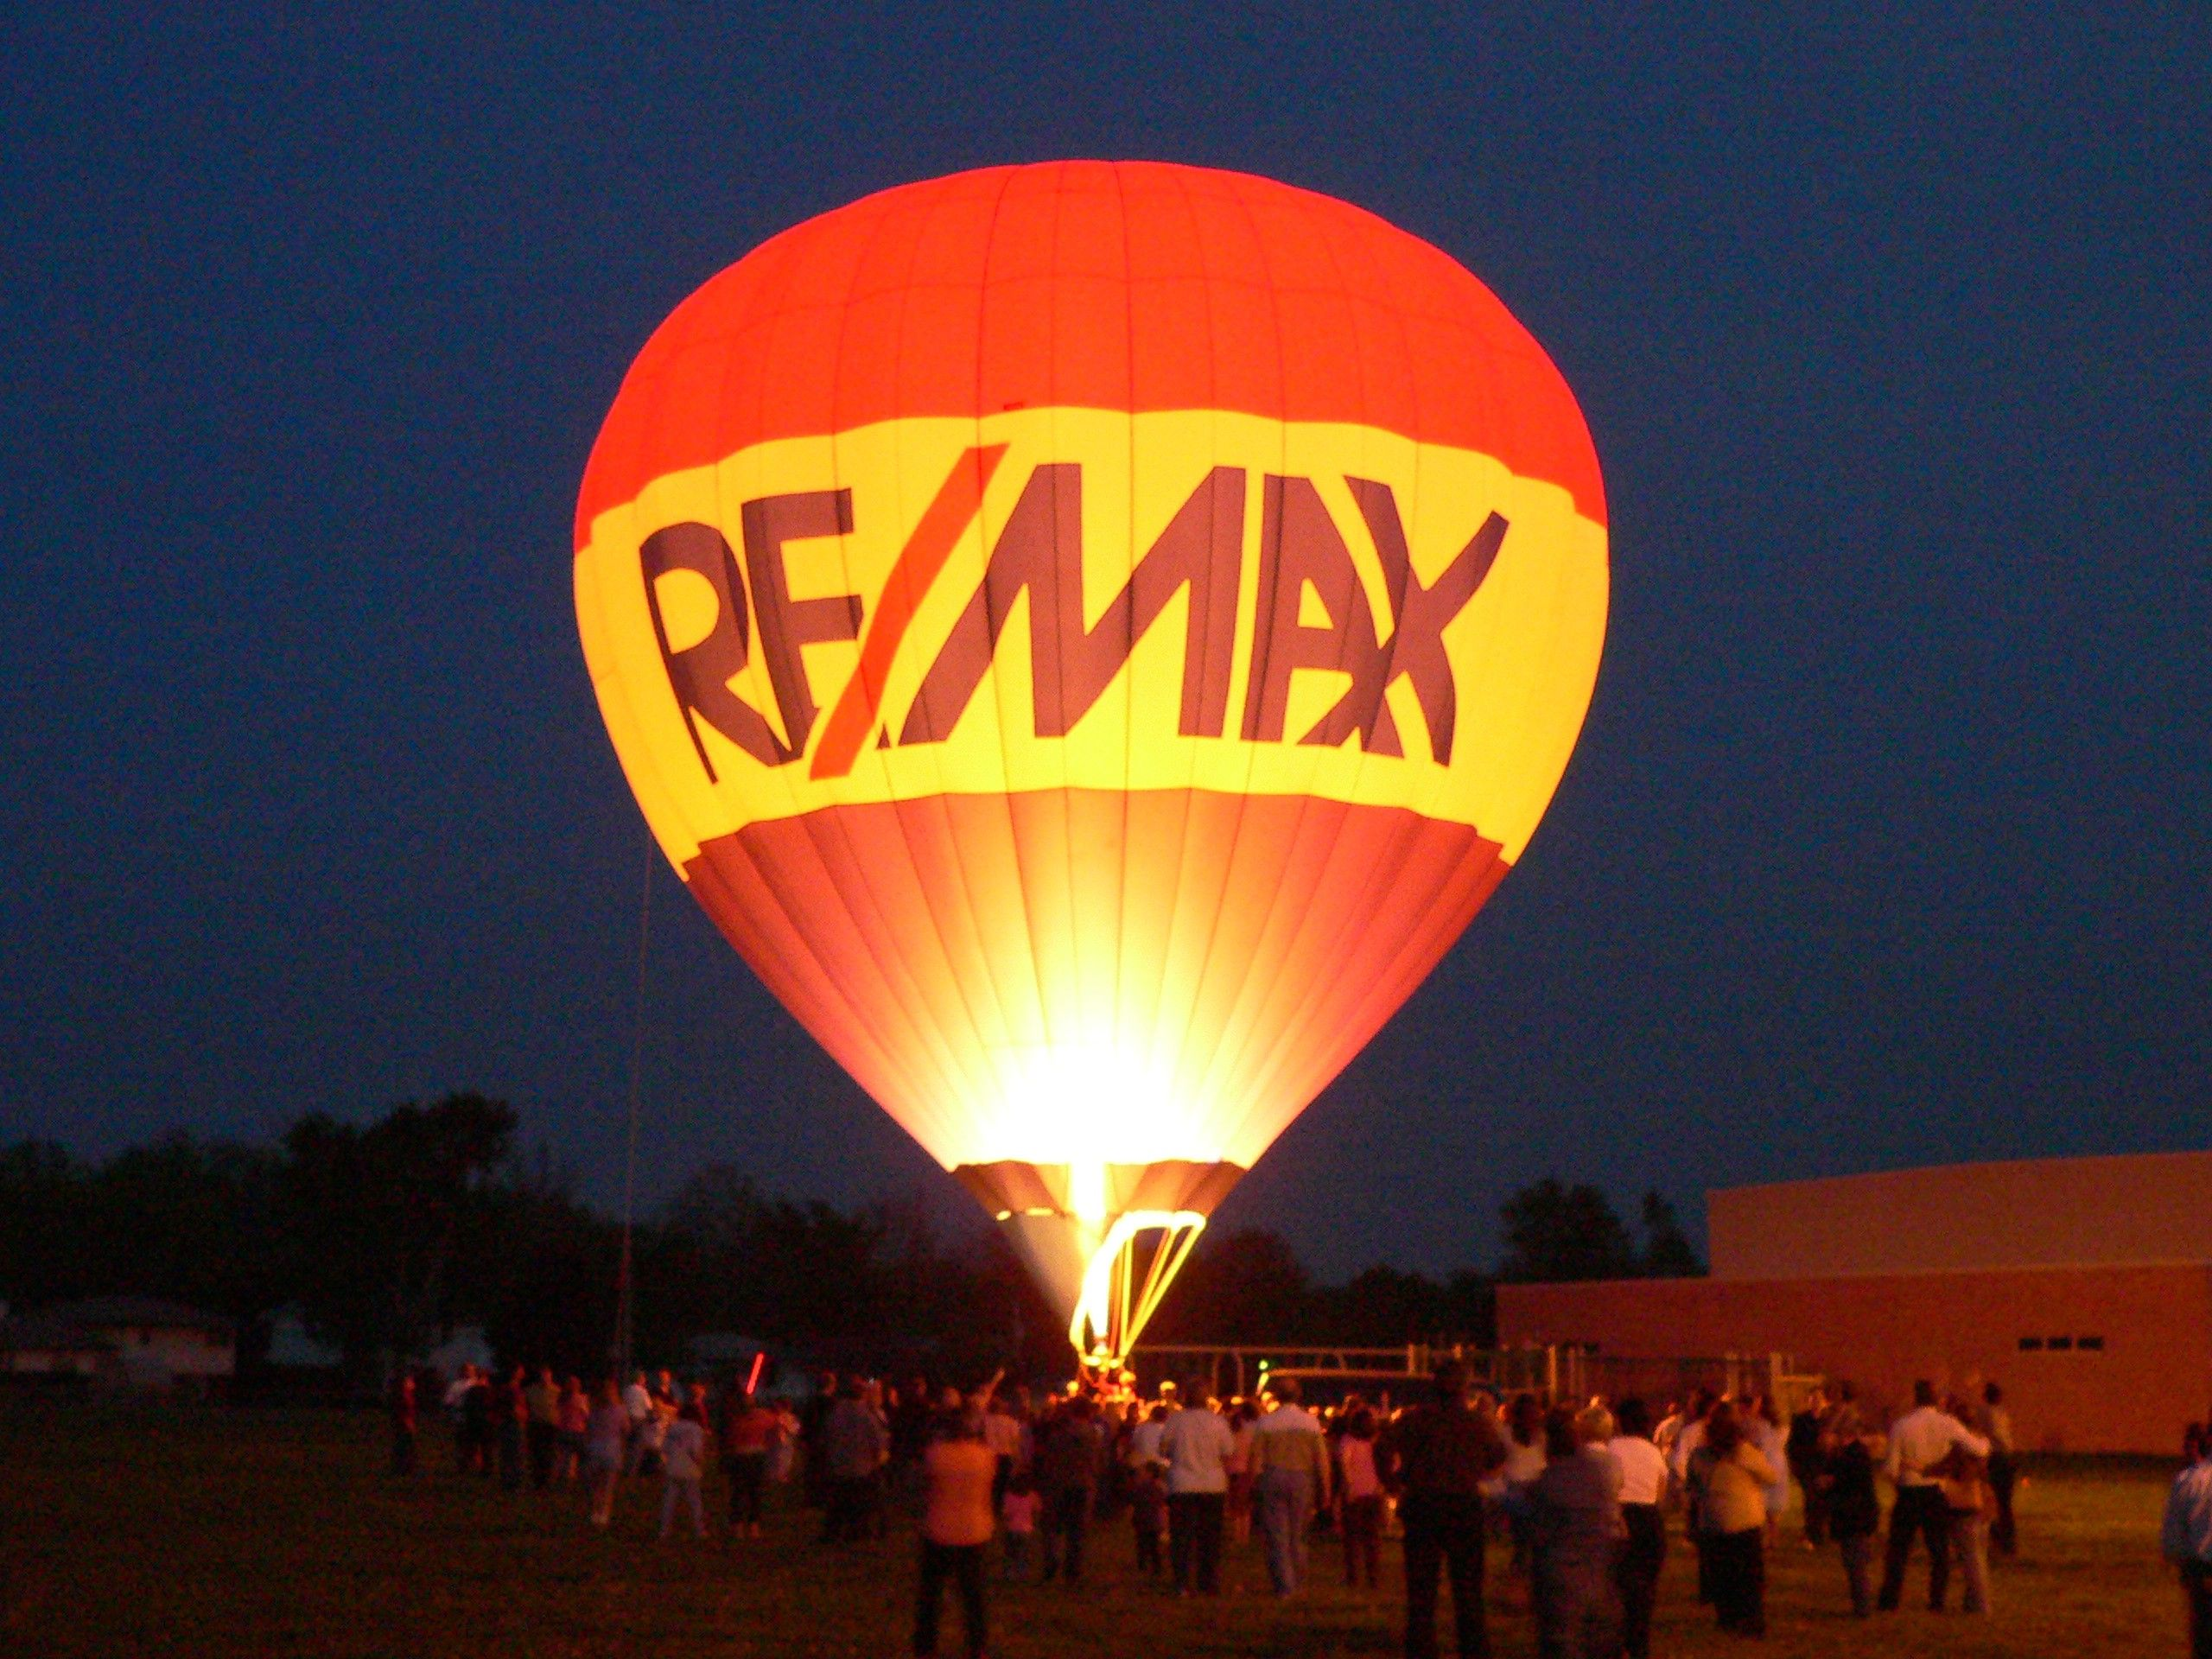 RE/MAX balloon. Our company logo. Re/Max Pinterest